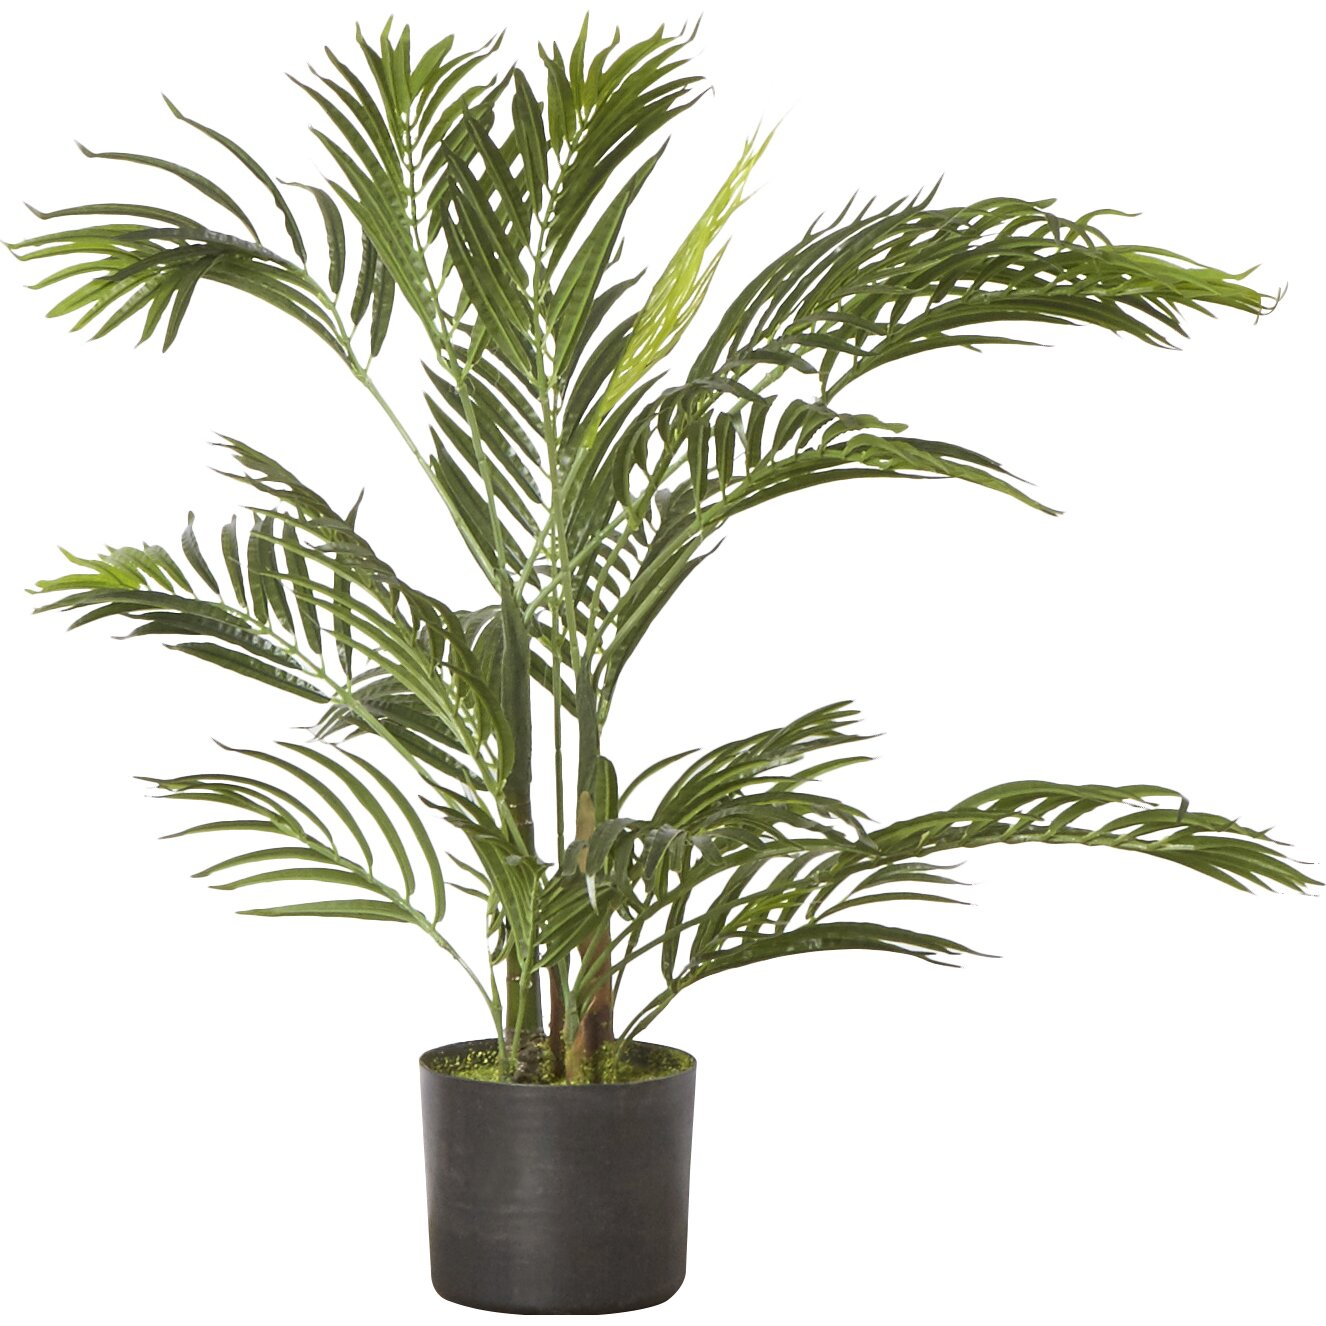 Areca palm tree floor plant reviews birch lane for Pictures of areca palm plants